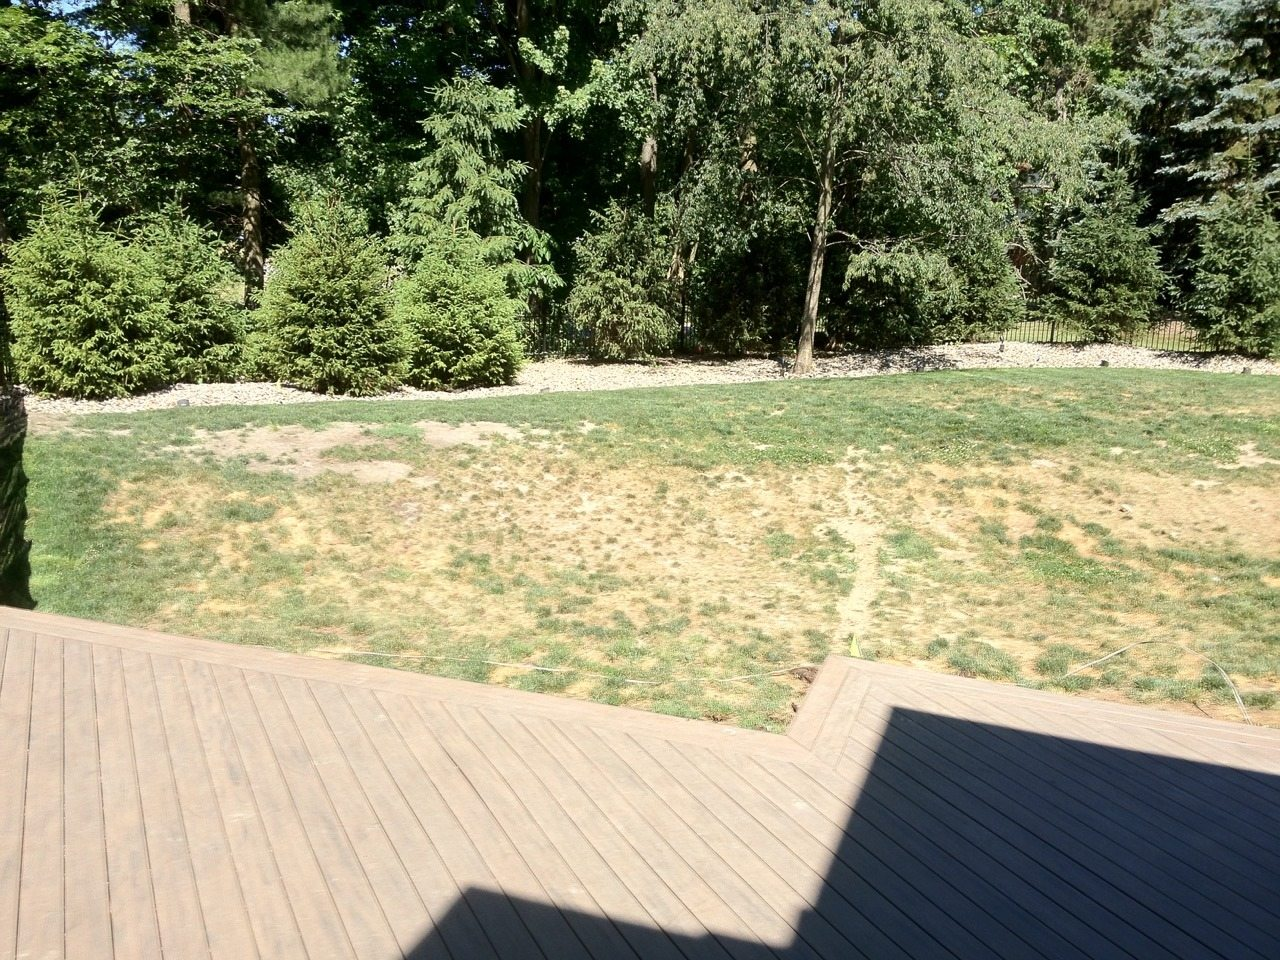 Install K9Grass for a Better Looking Lawn!